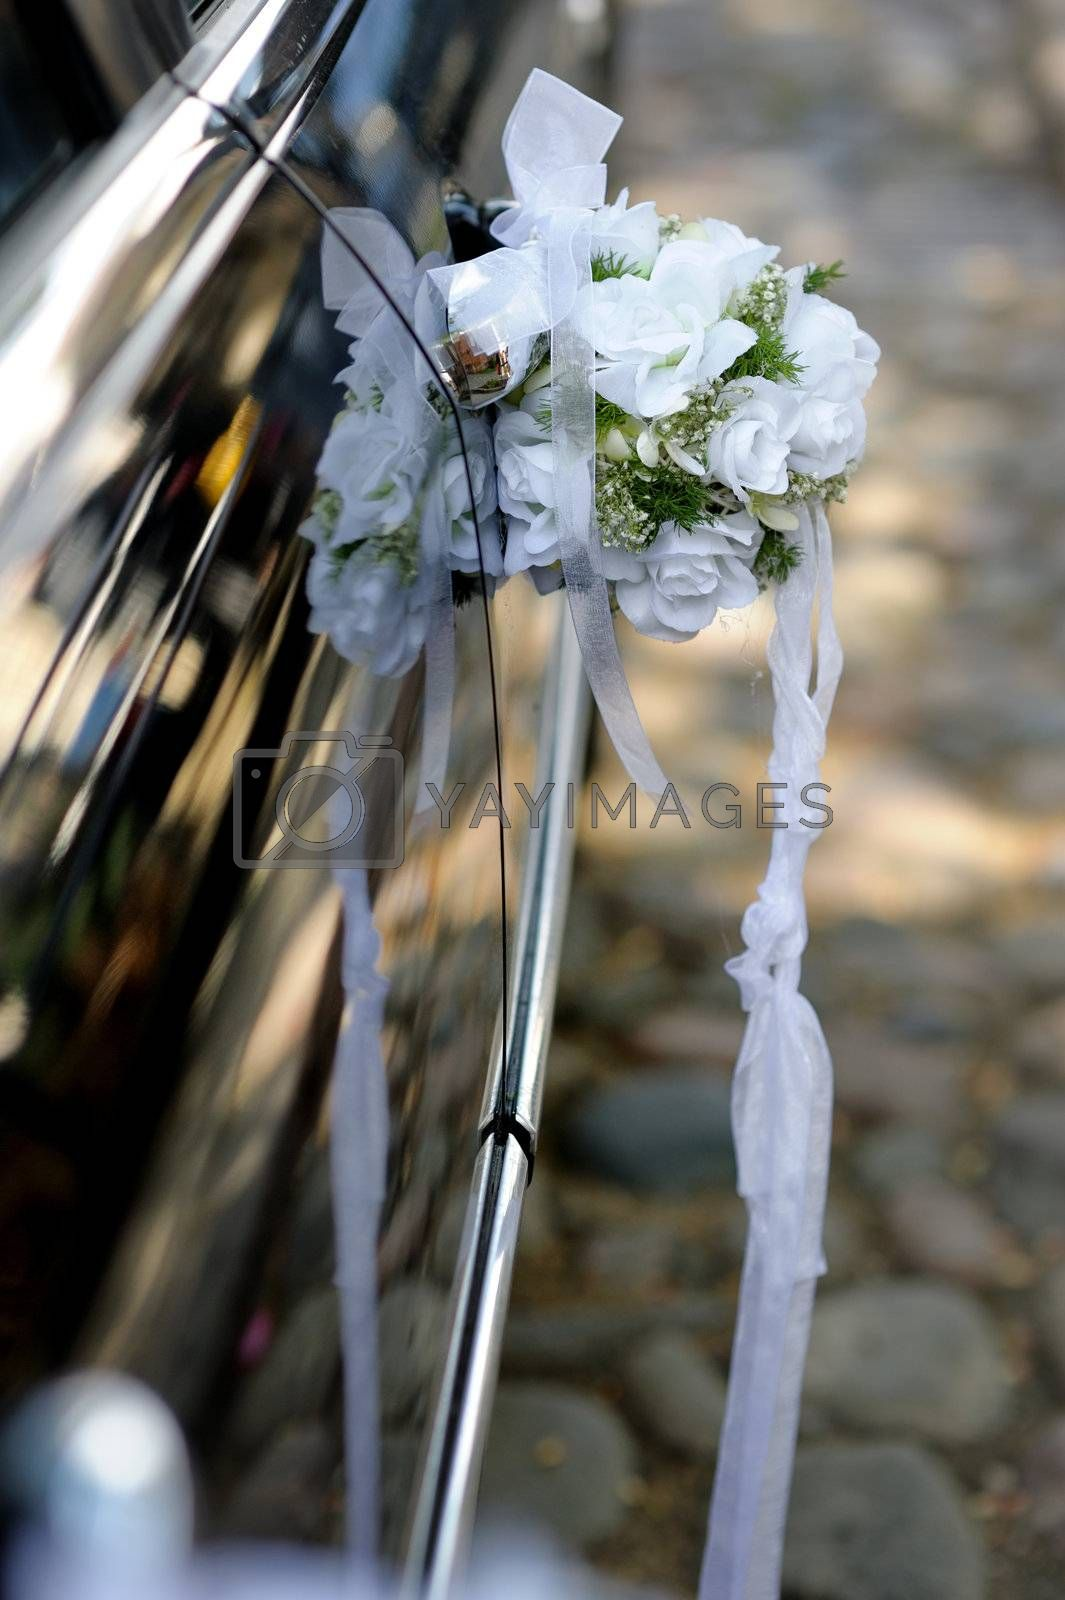 Floral decoration made of white roses on the black car door